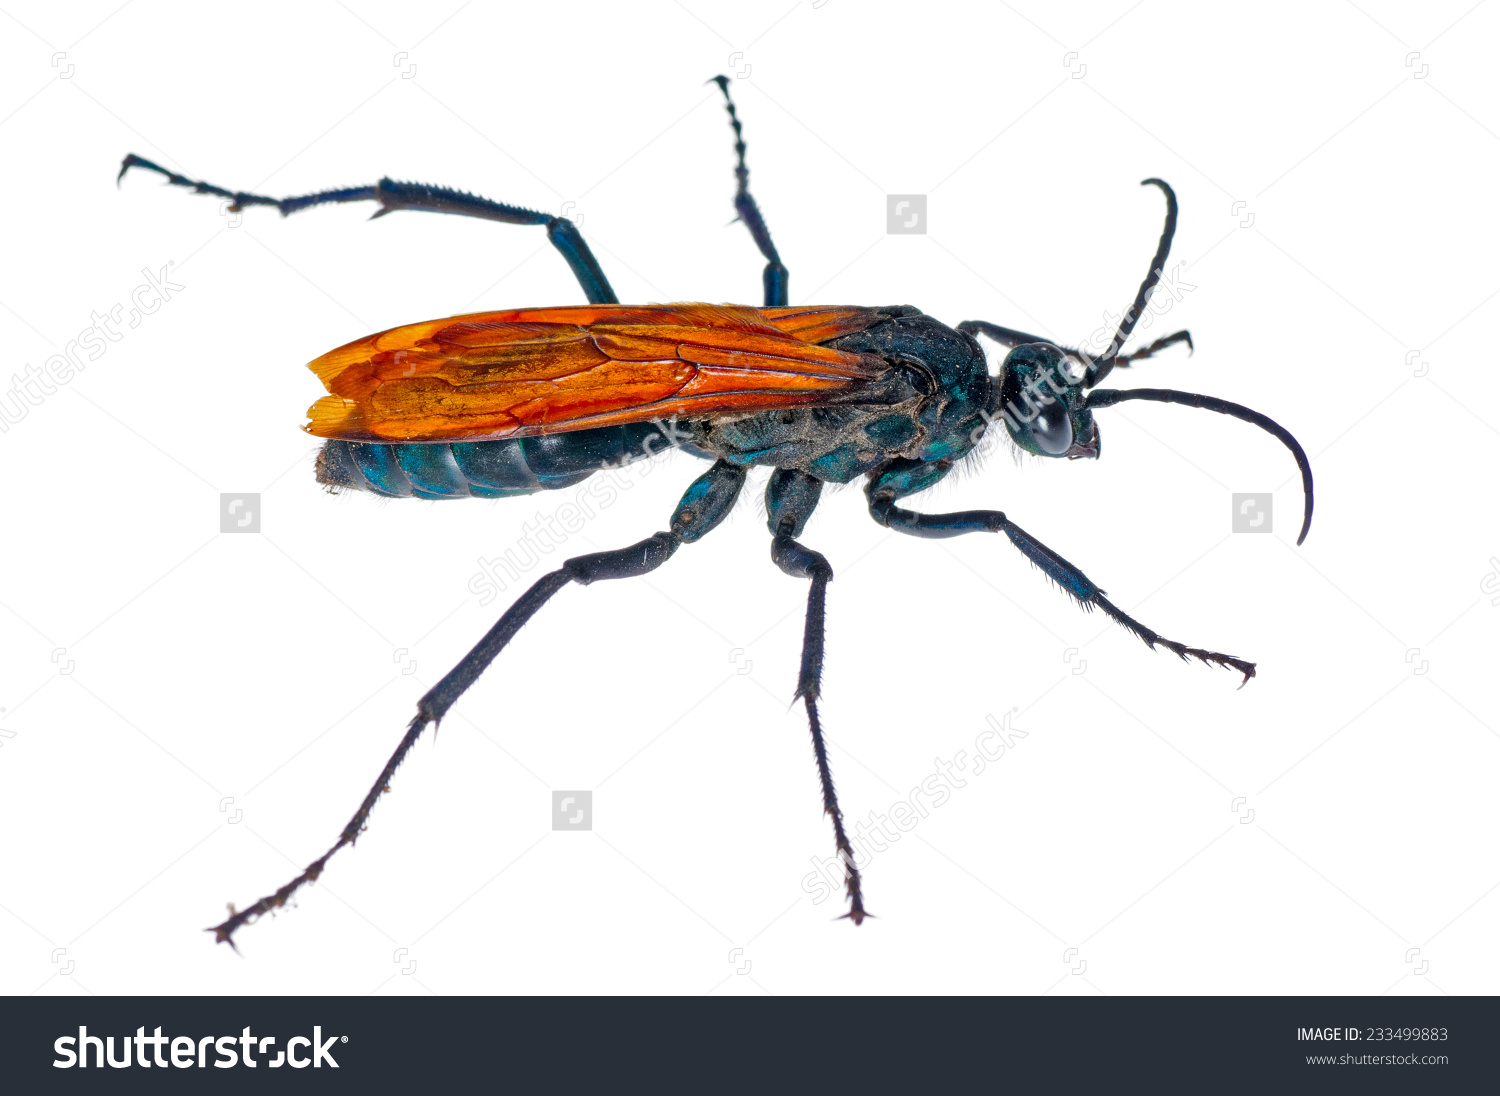 Tarantula Hawk Spider Wasp Pepsis Caridei Stock Photo 233499883.